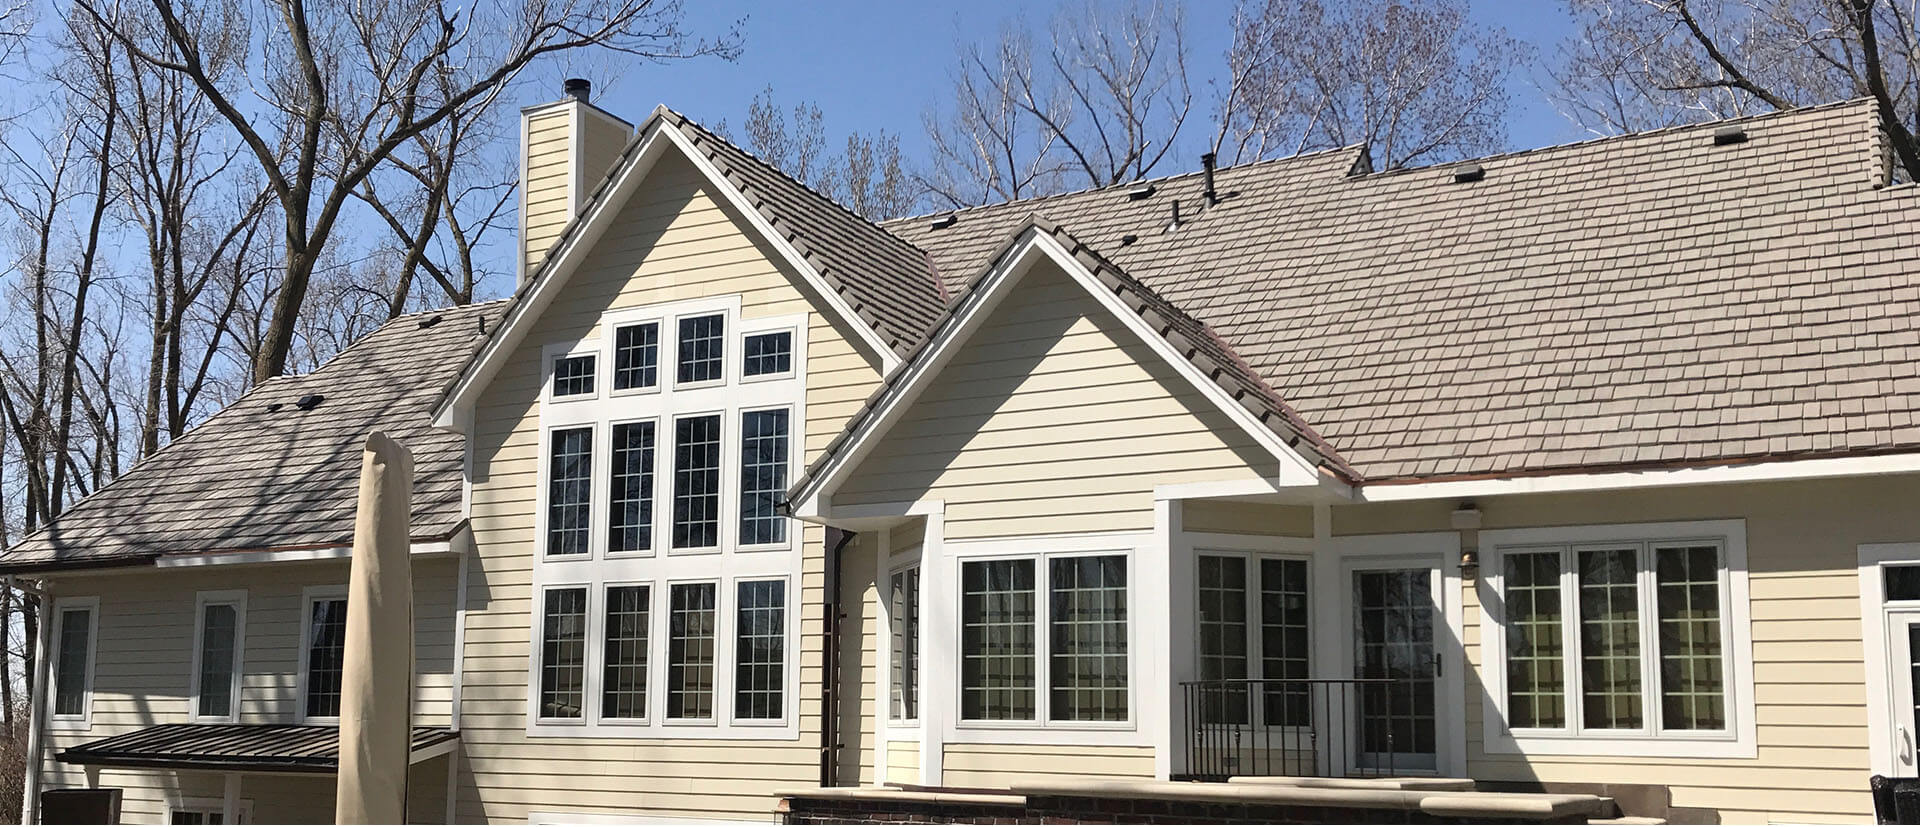 Full Exterior Siding Restoration